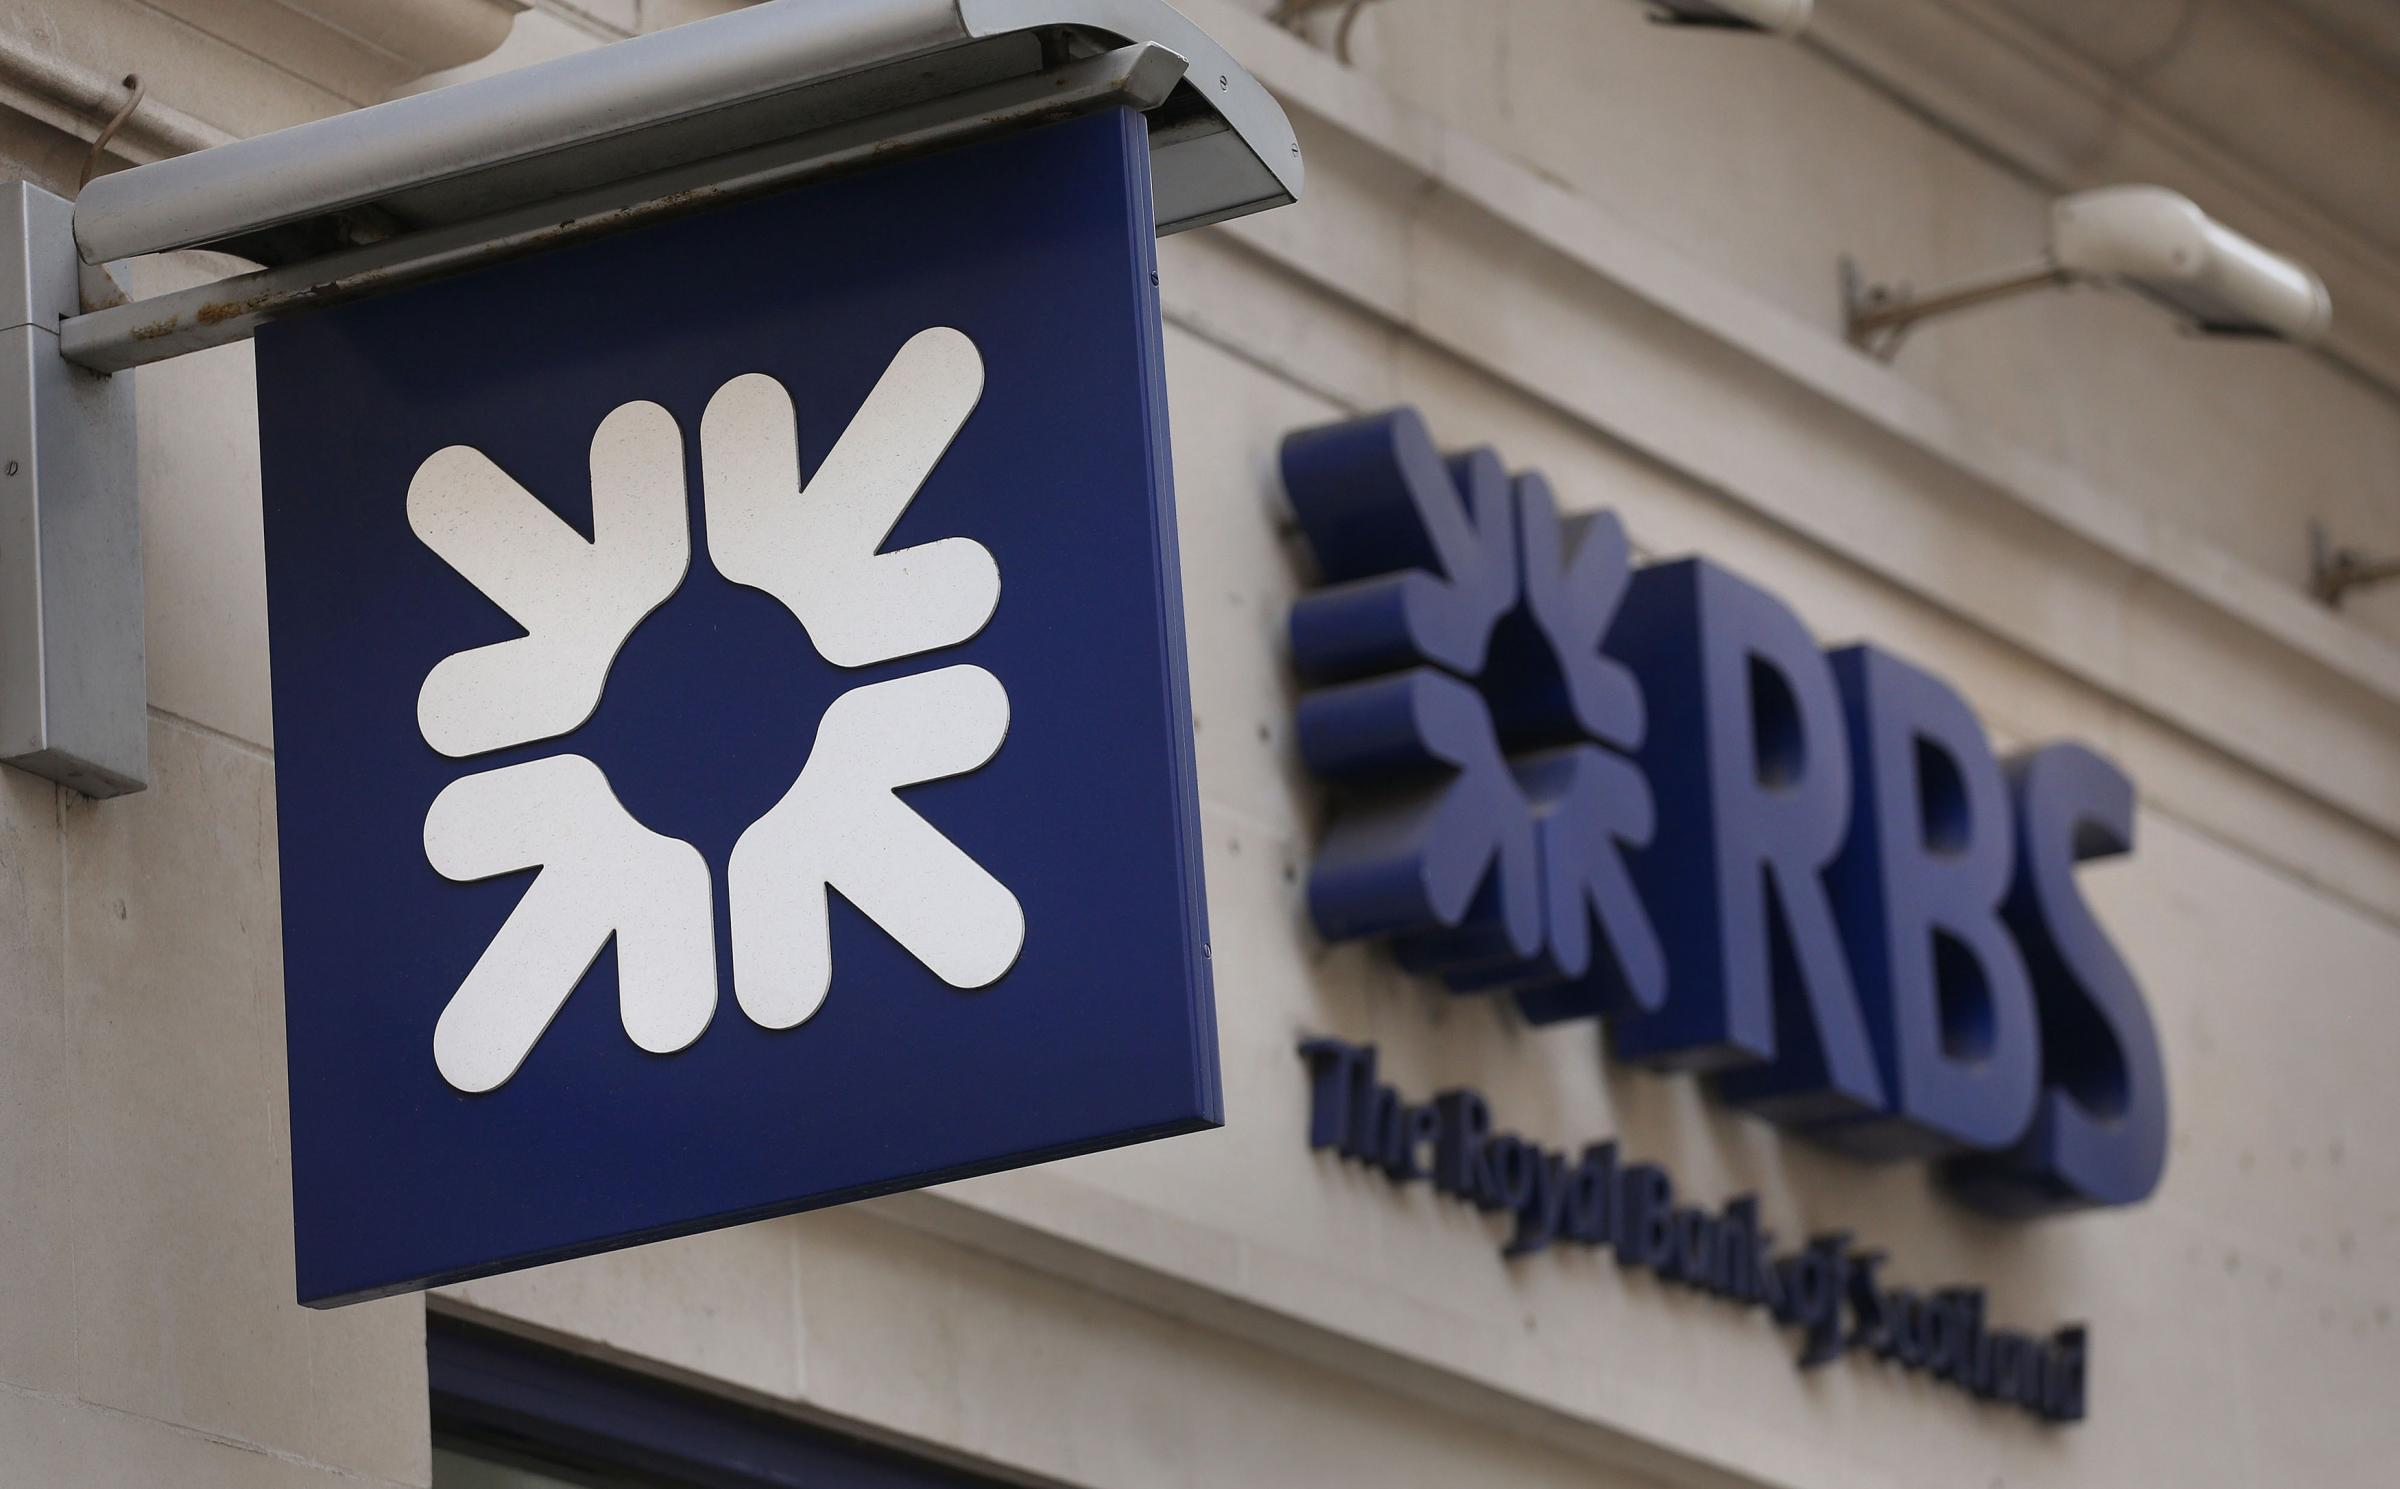 RBS whose continued existence depends upon money from taxpayers is in the process of shutting a quarter of its branches and cutting almost 700 jobs.